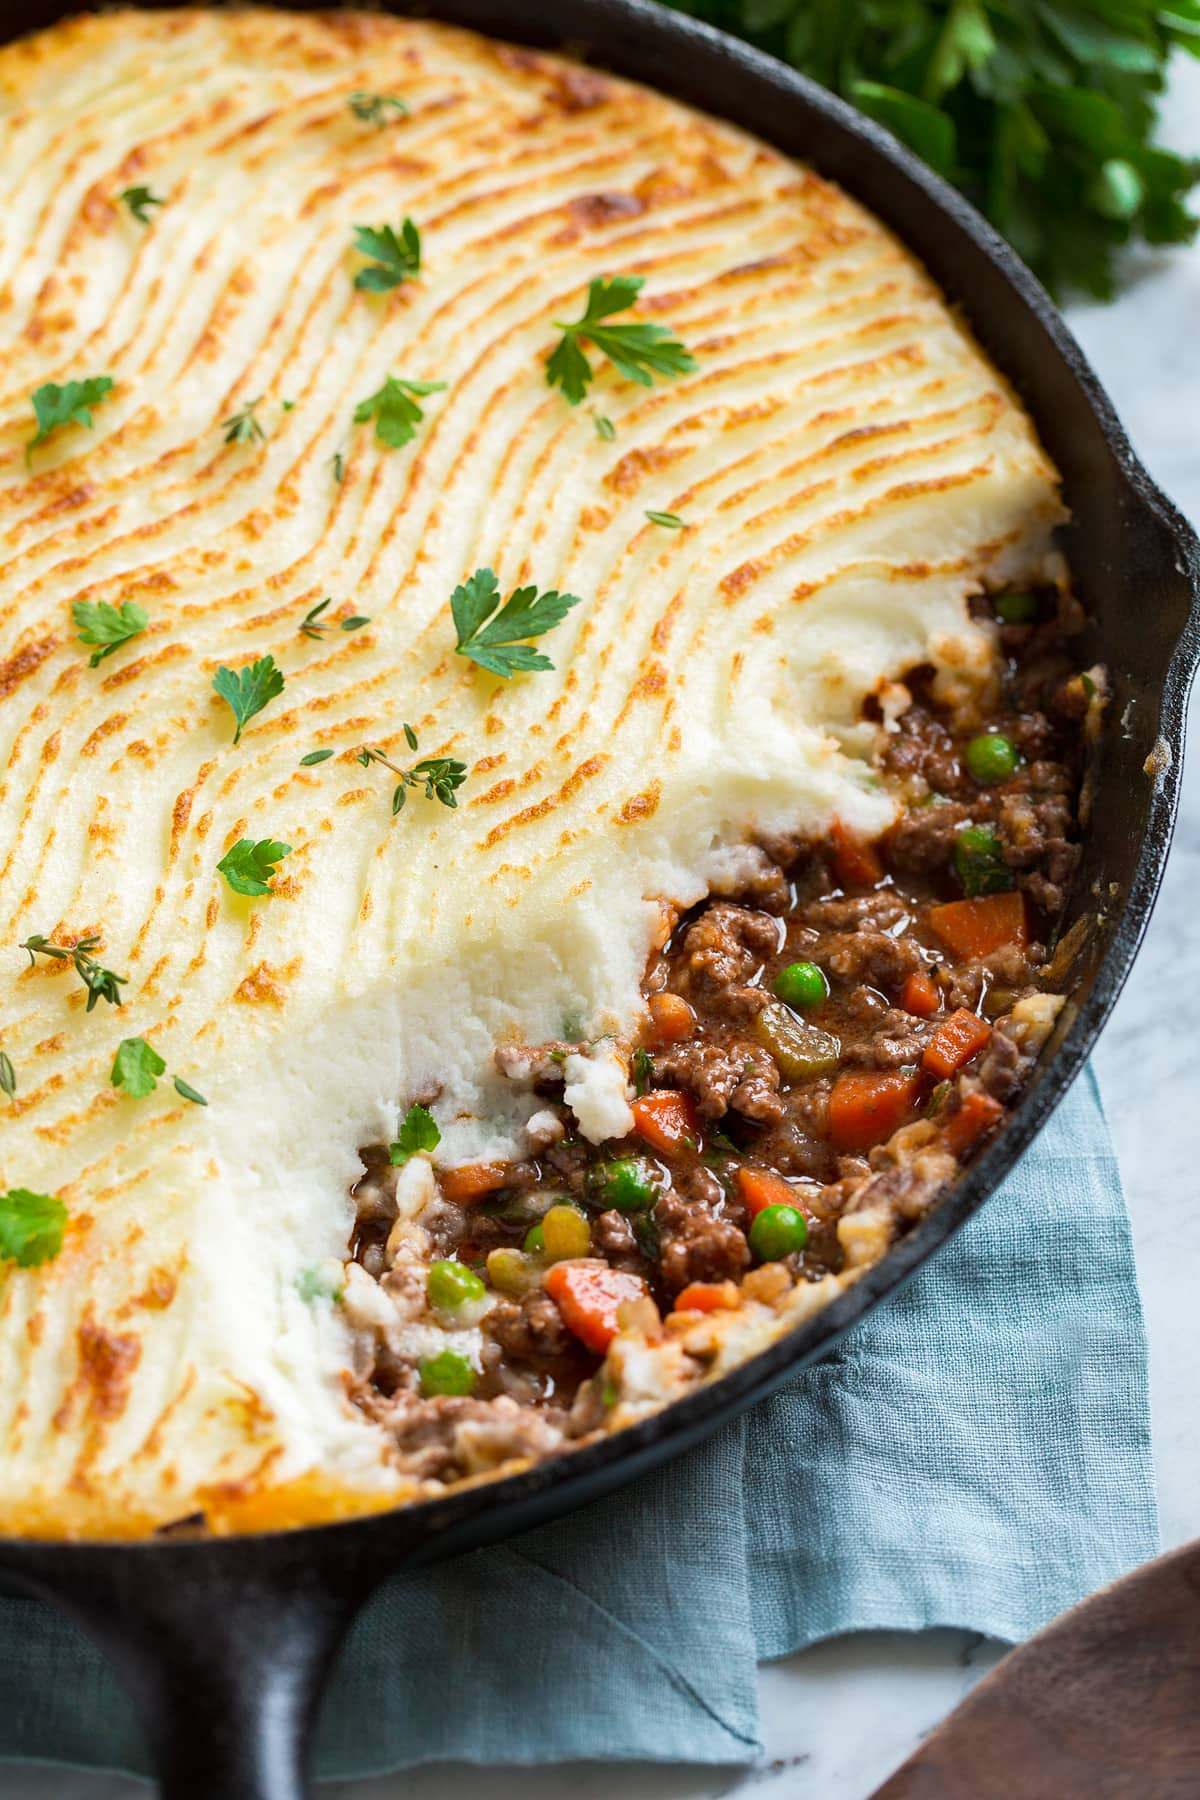 Close up image of Shepard's Pie in a cast iron skillet.